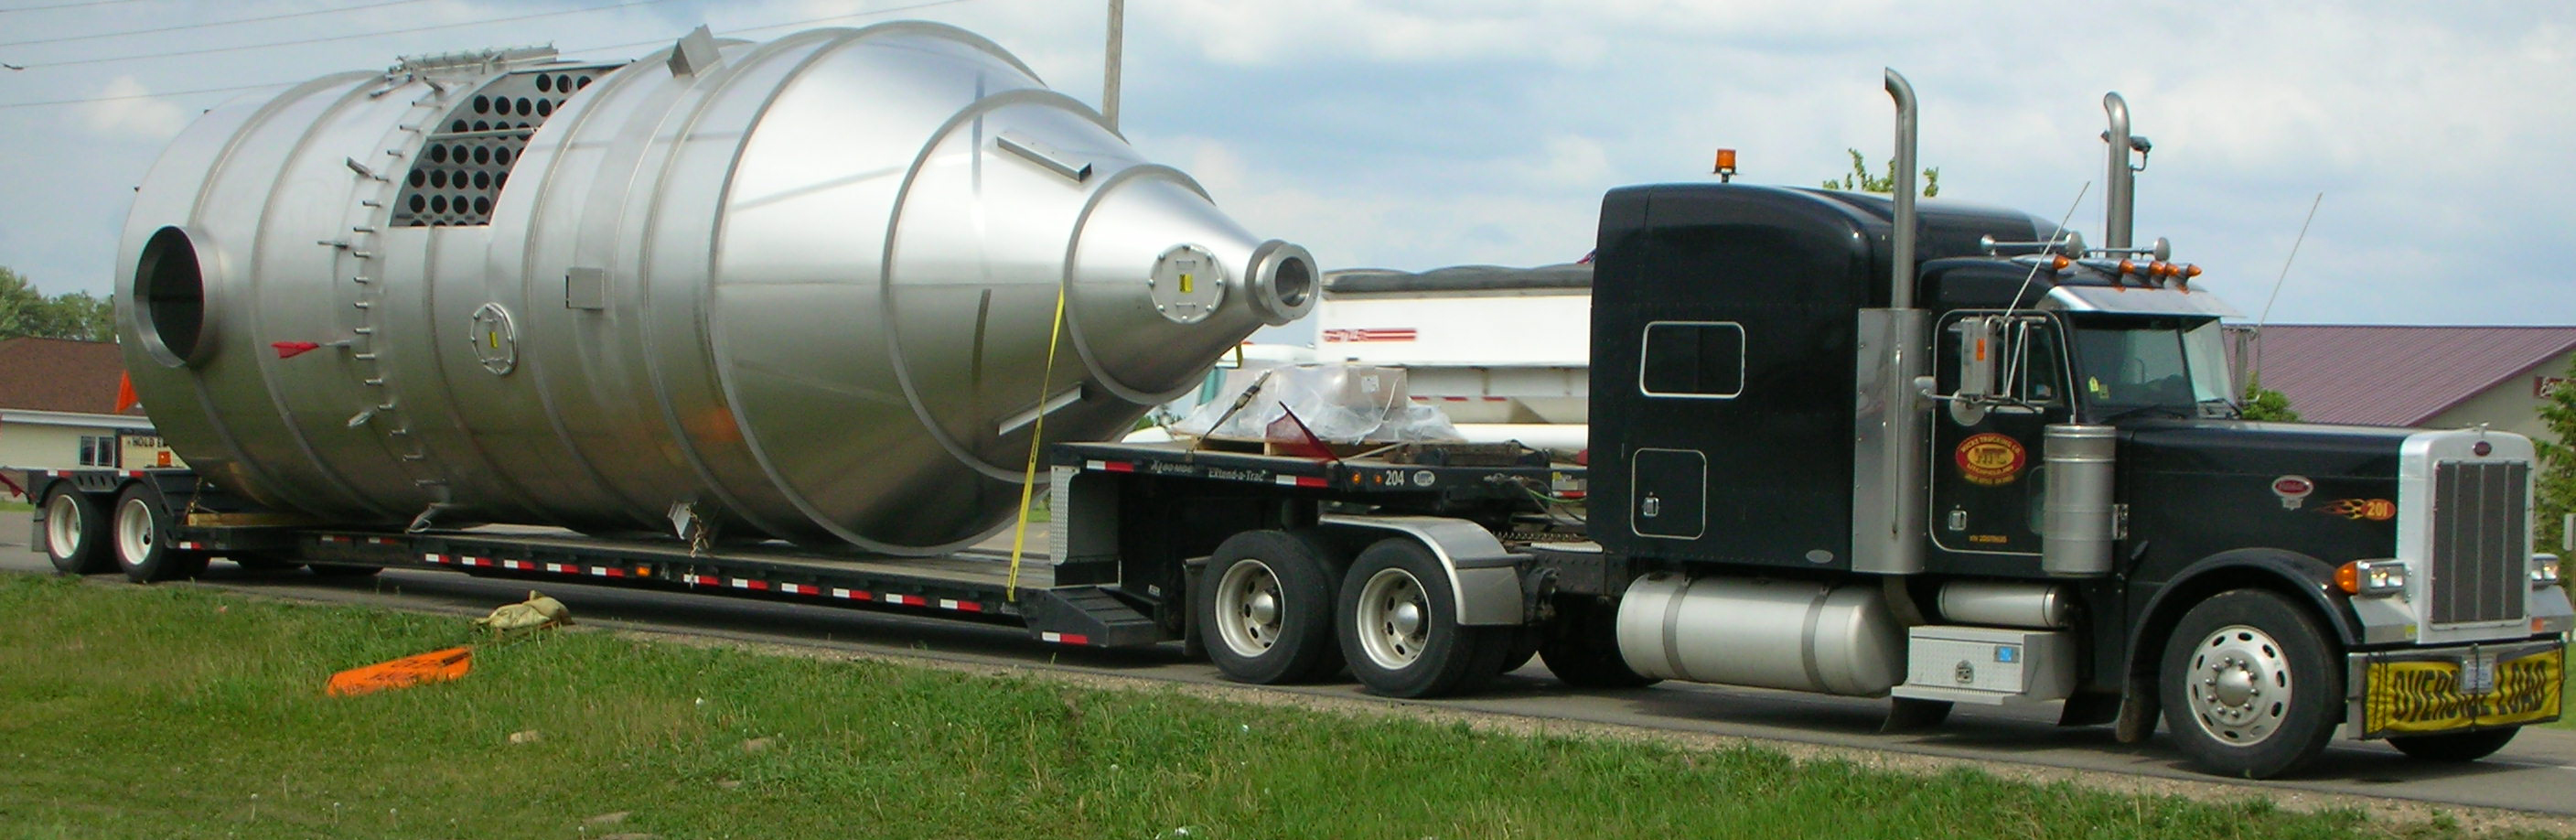 Truck carrying an oversized load with an oversized truck permit